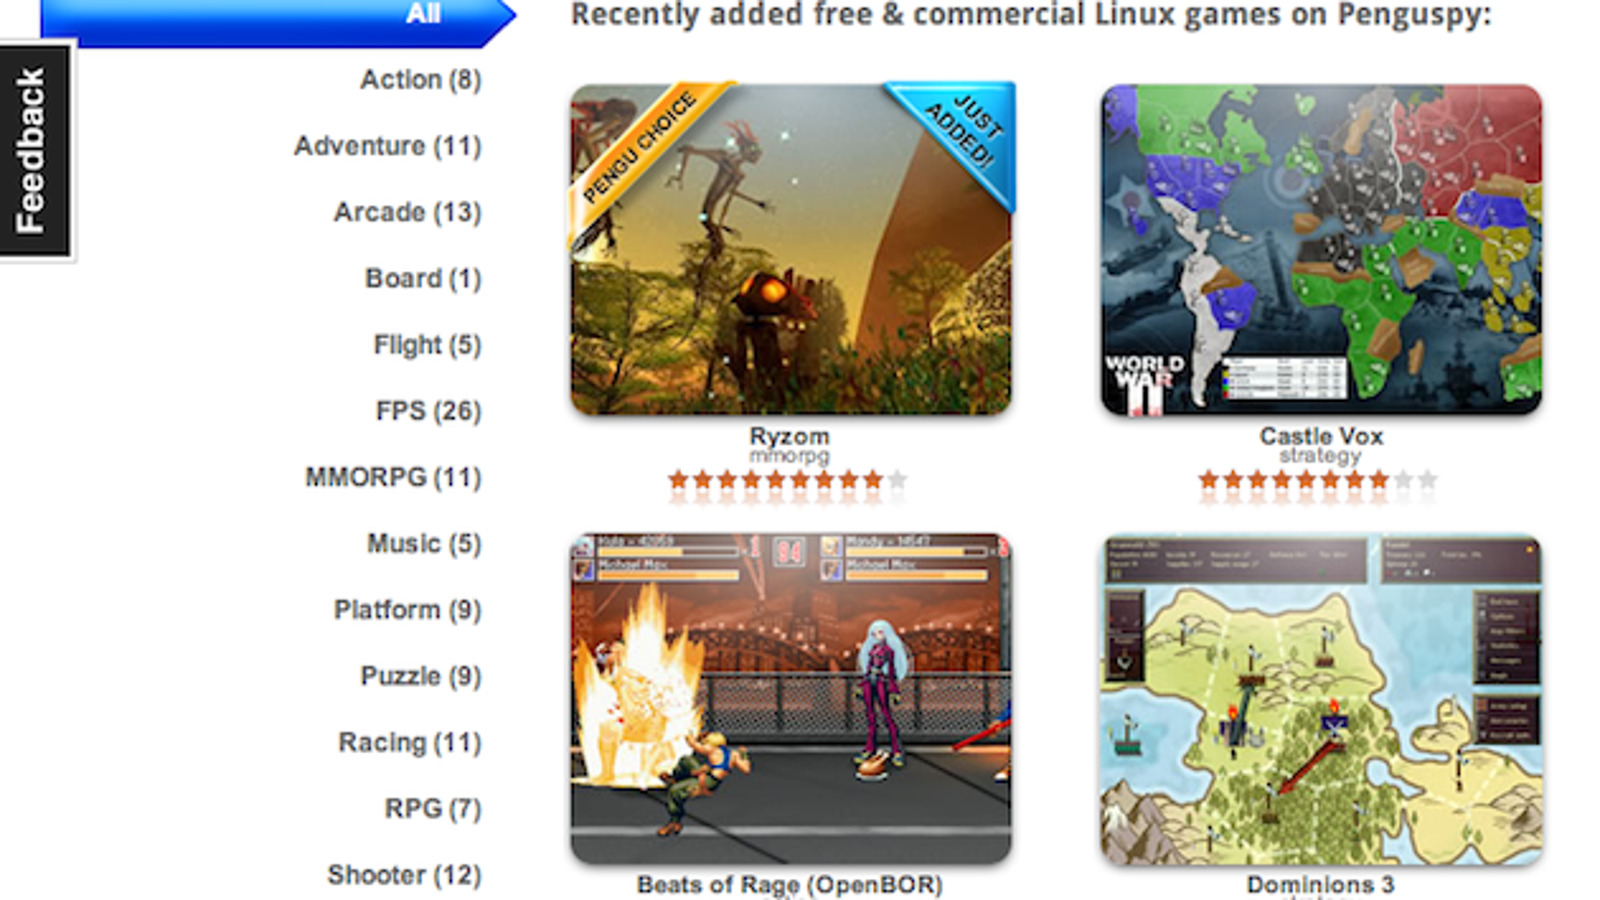 Penguspy is a Database Chock Full of Games for Linux